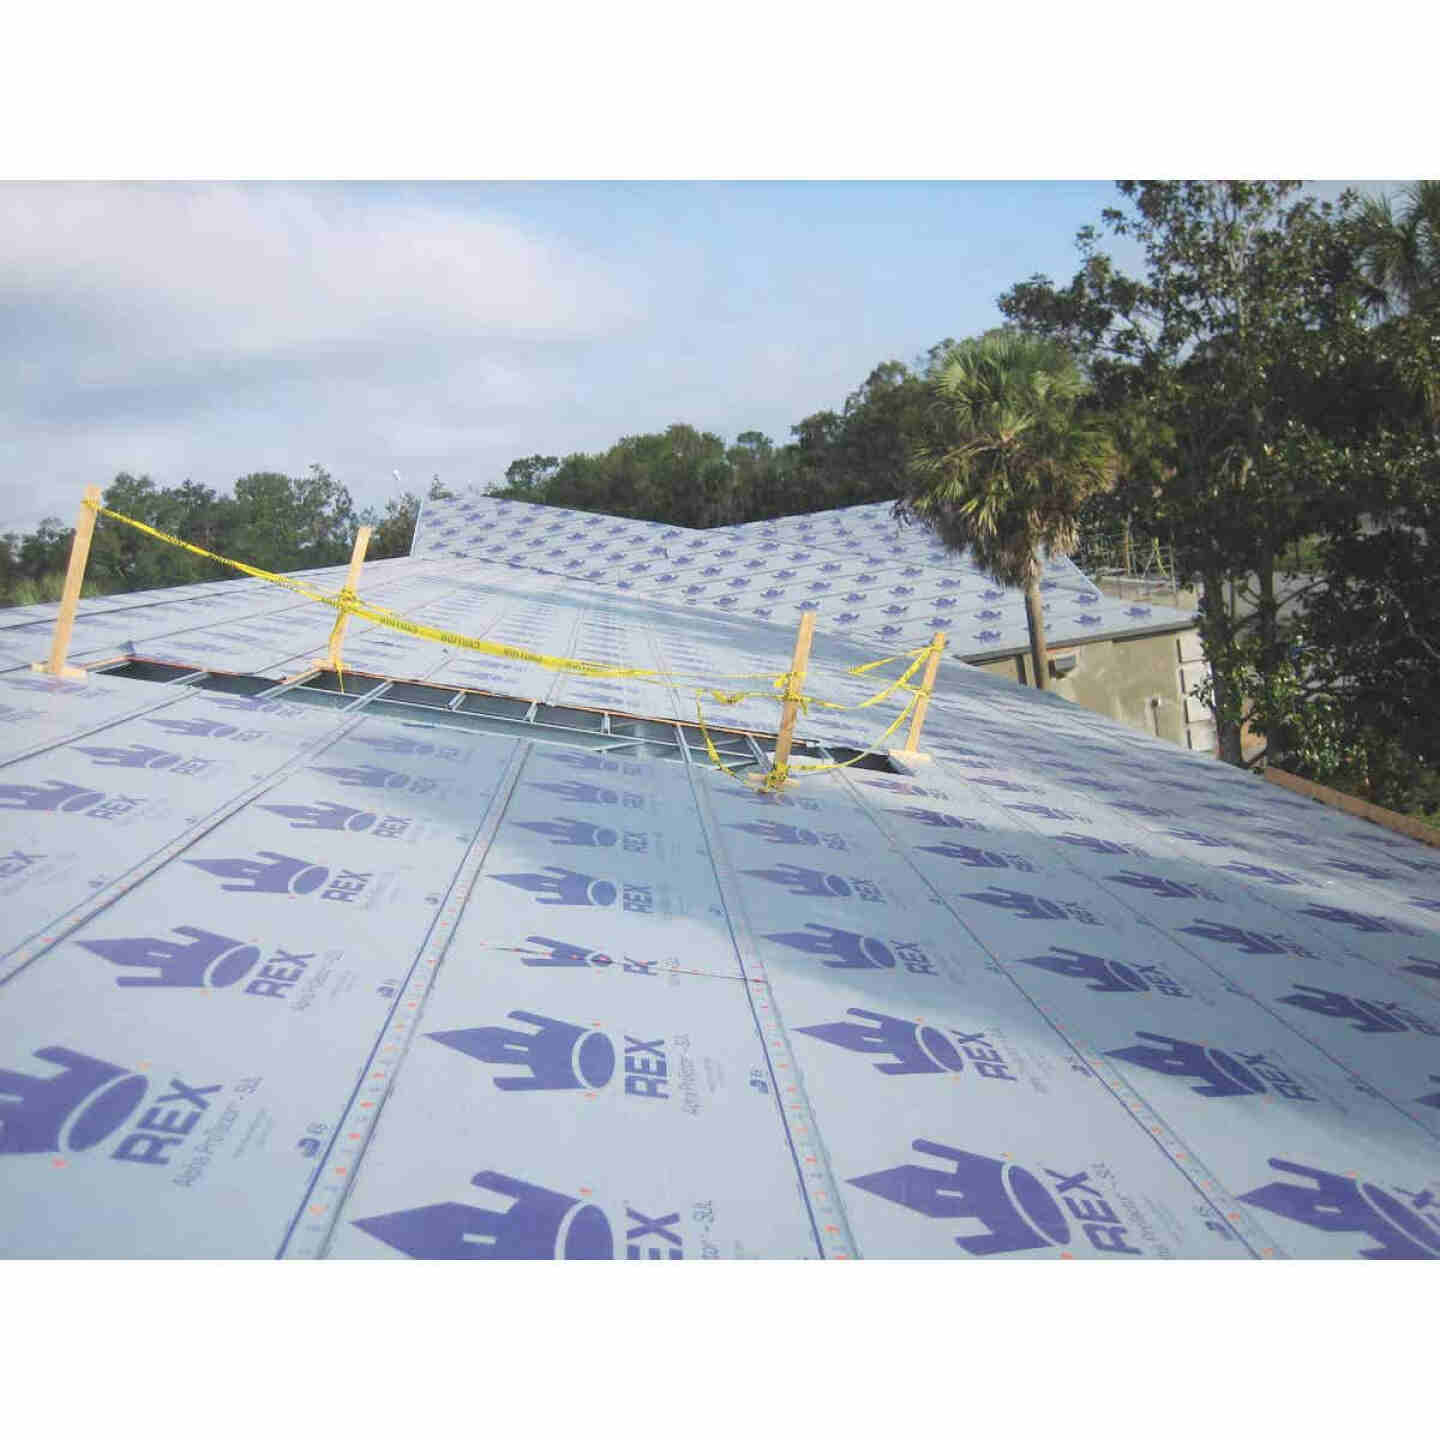 SynFelt 48 In. x 250 Ft. Gray Woven Synthetic Roof Felt Image 1